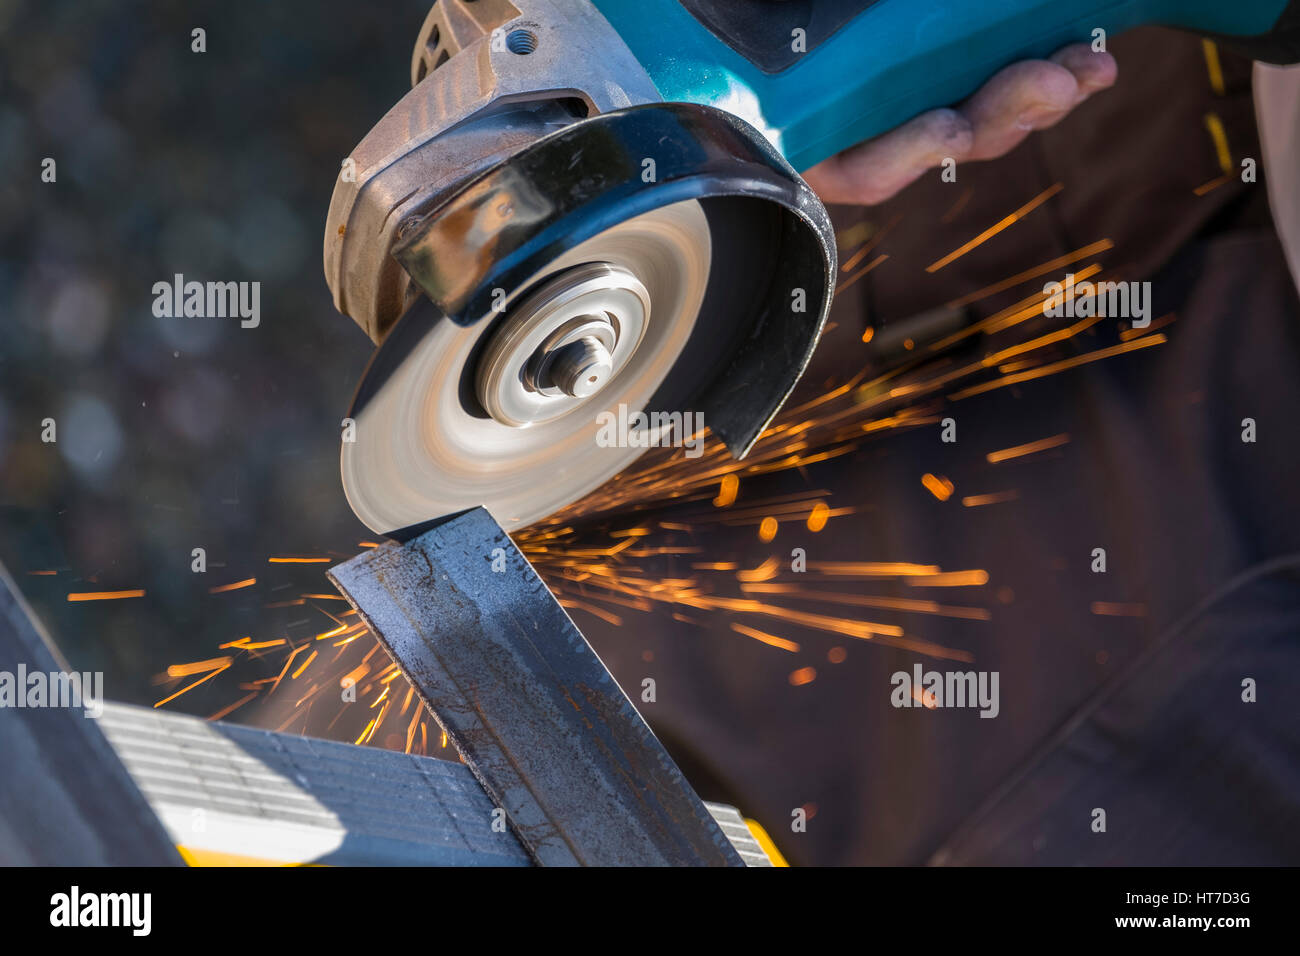 An angle grinder cutting through steel and giving off sparks - Stock Image